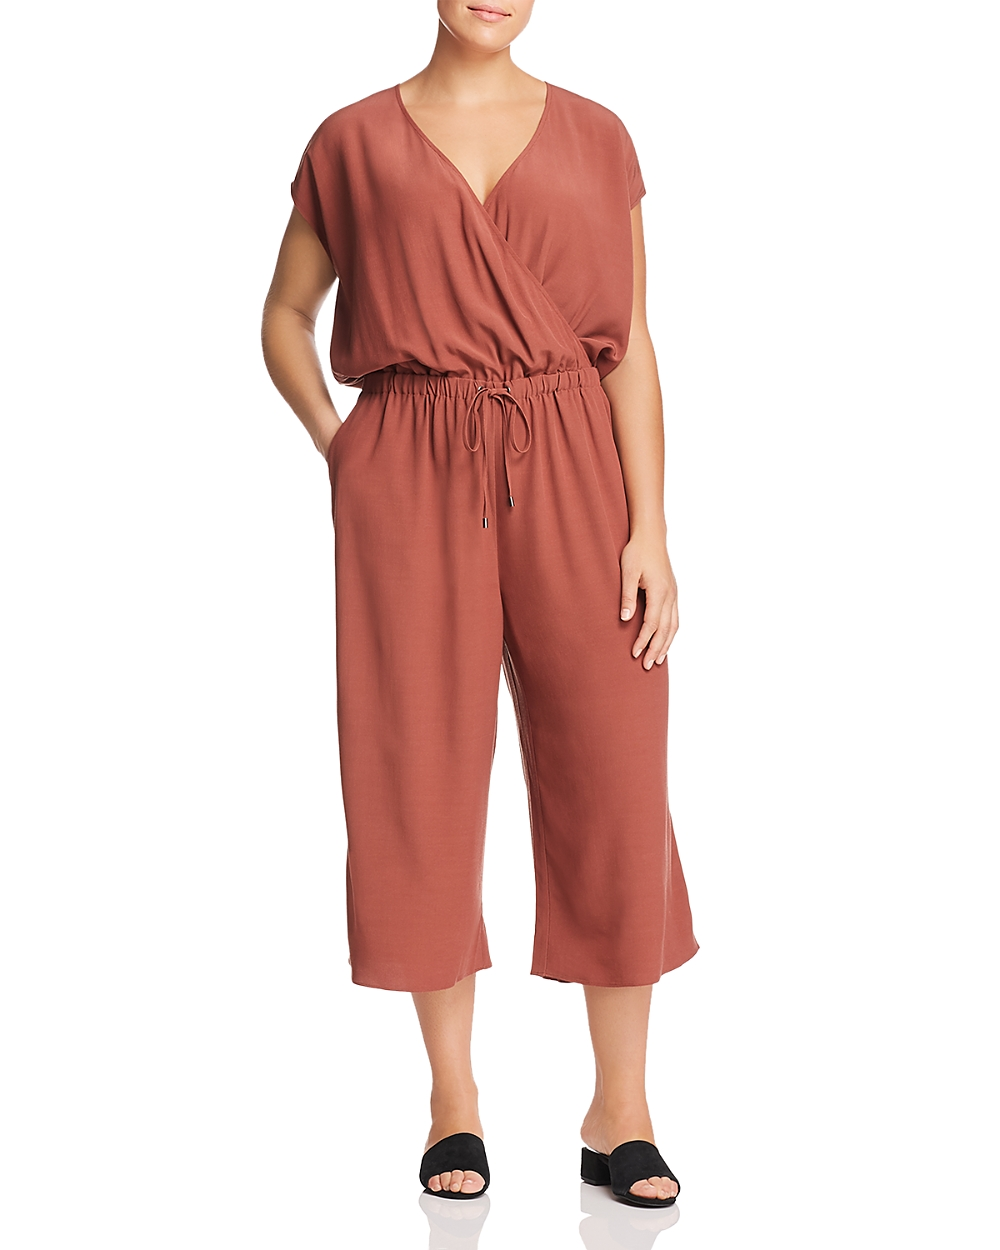 2dcb567e754 Details about EILEEN FISHER $288 NEW 14919 Wide Leg Cropped Jumpsuit Womens  Dress 1X